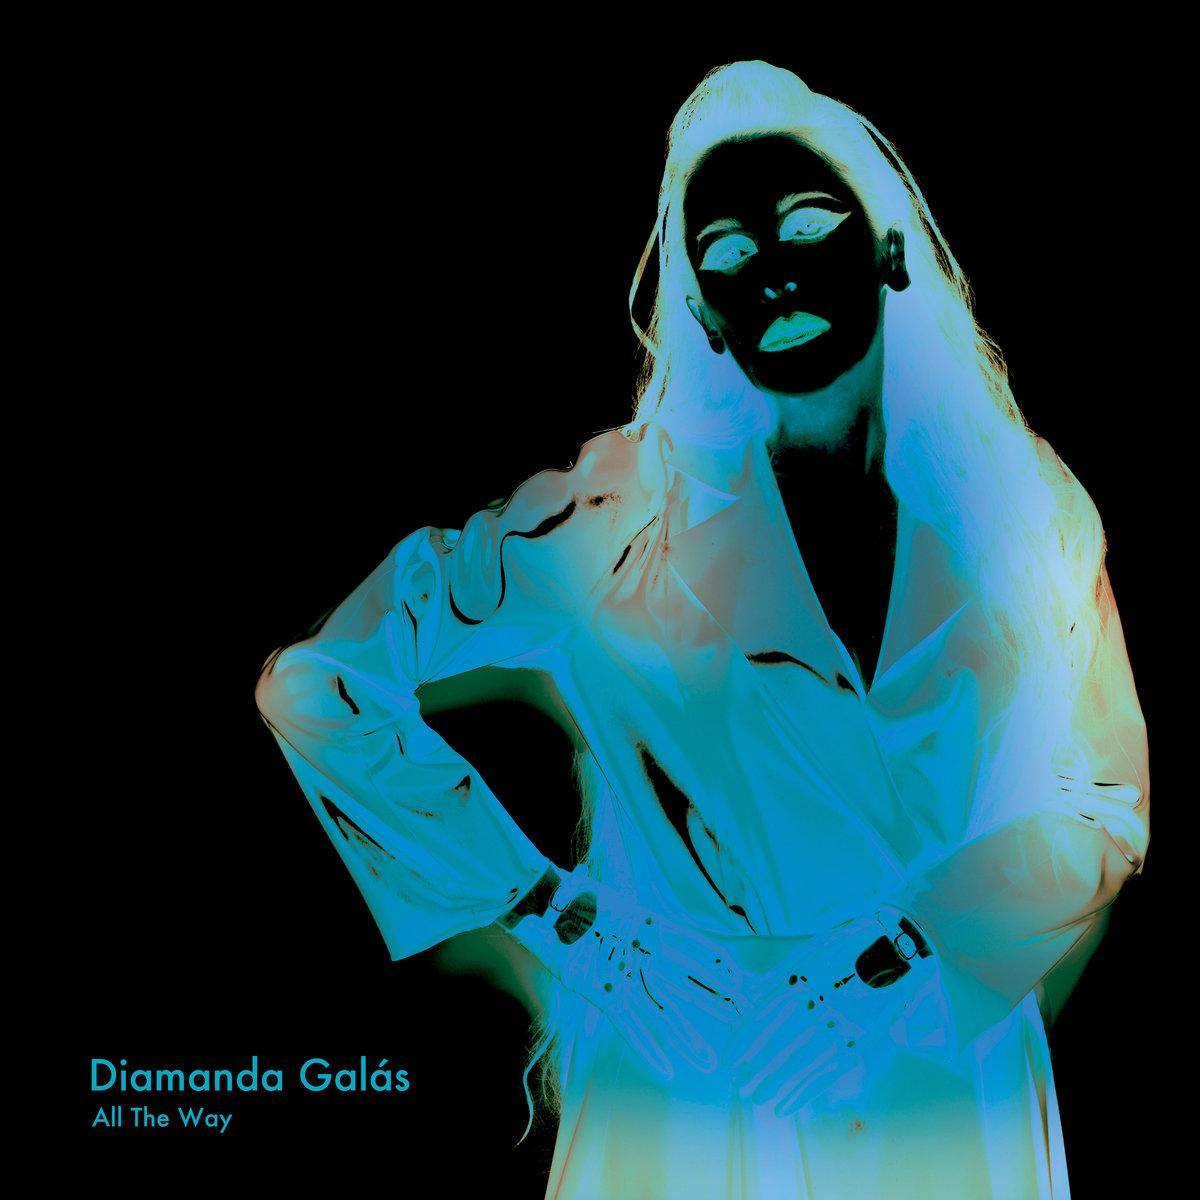 mp3 diamanda galas